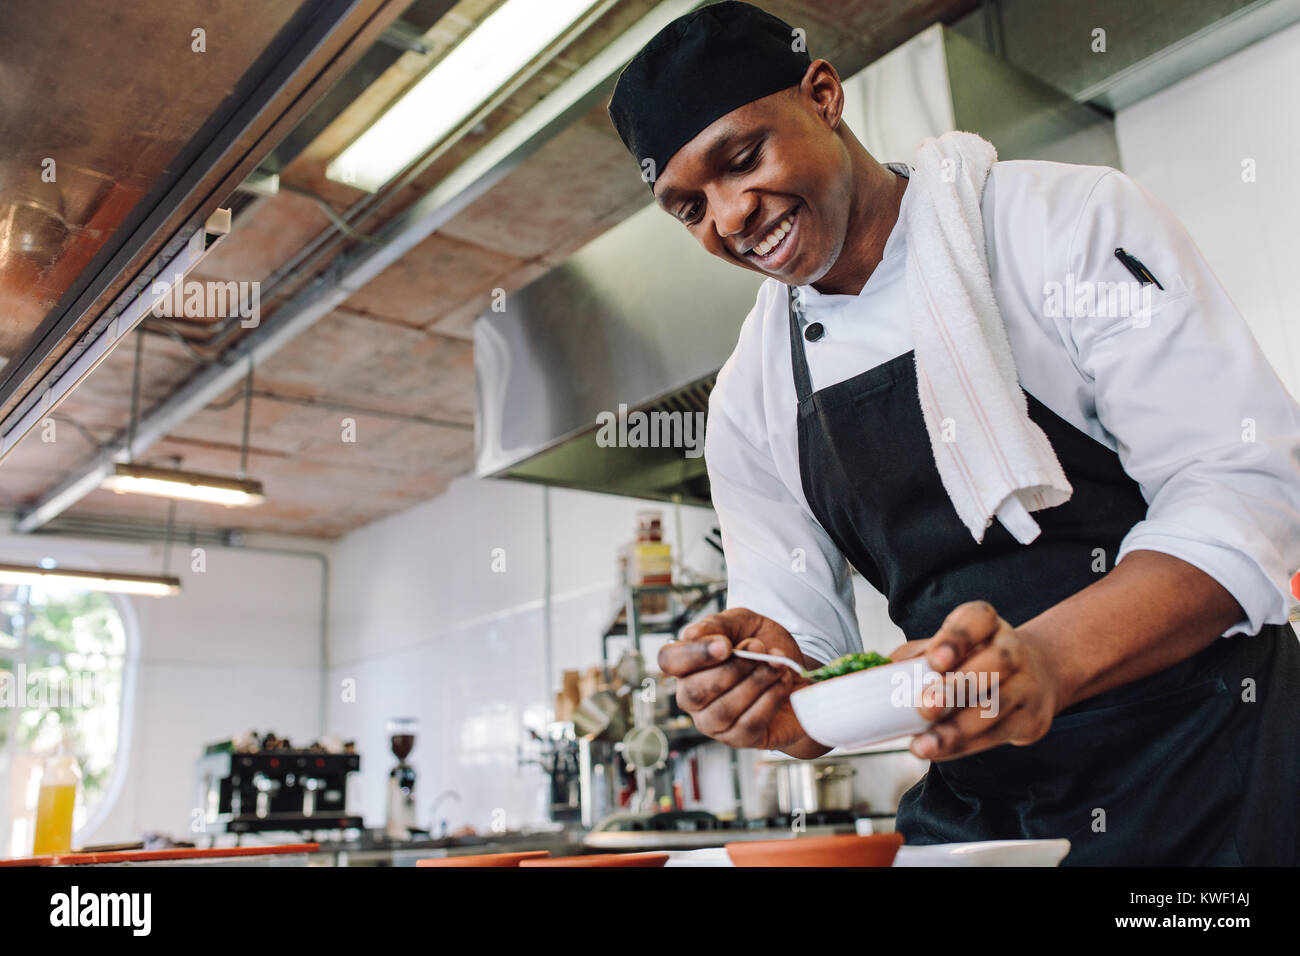 Gourmet chef in uniform cooking in a commercial kitchen. Happy male cook wearing apron standing by kitchen counter - Stock Image